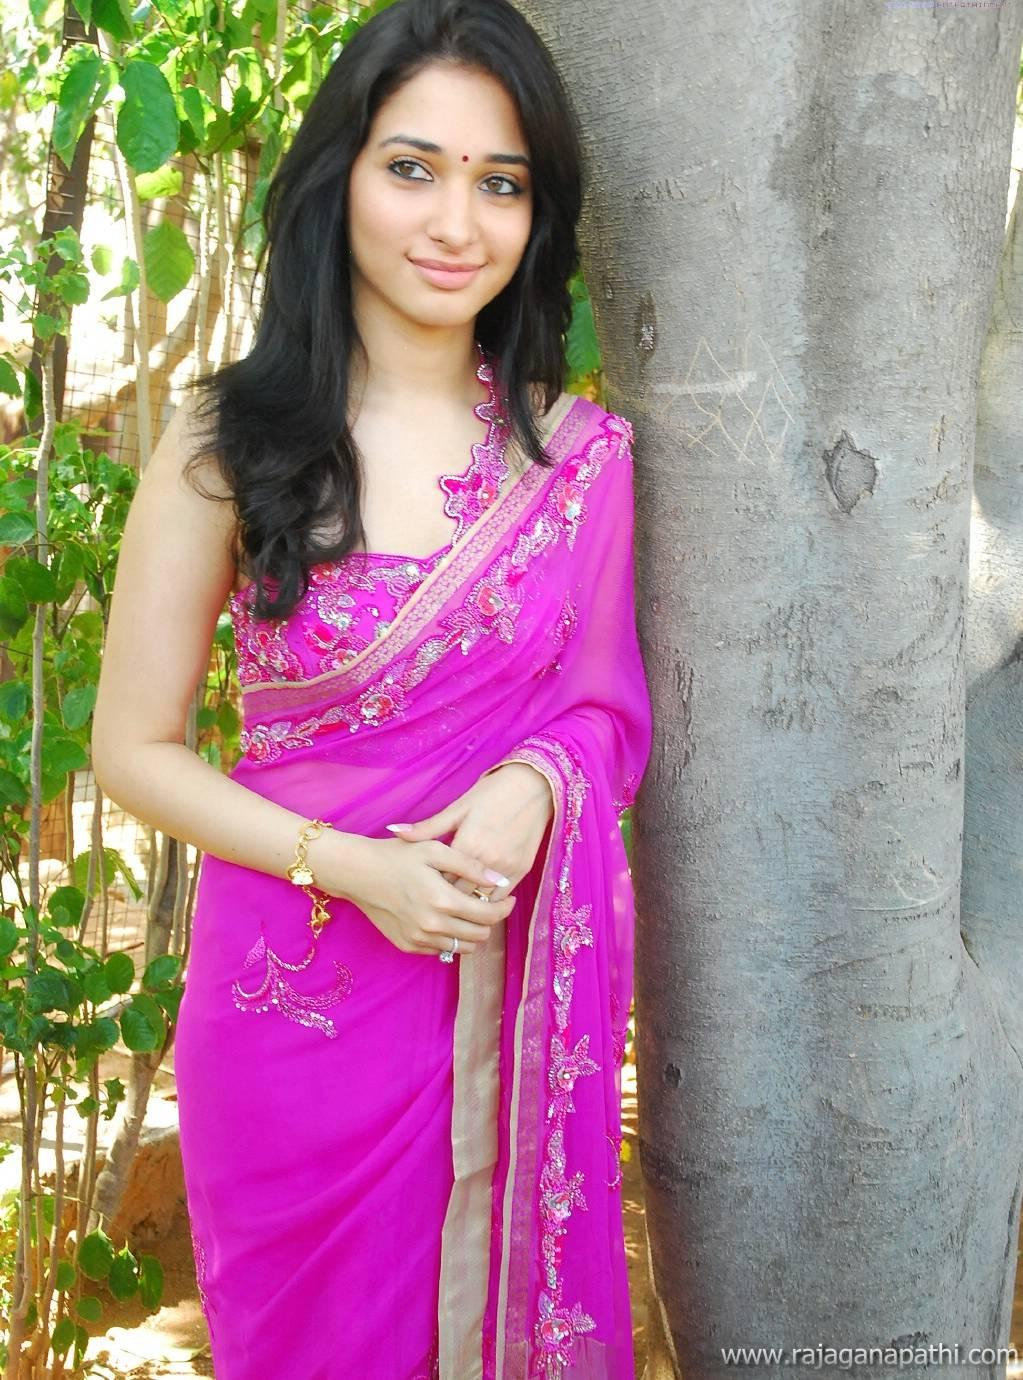 Tamanna Saree Gulte: SOUTH ACTRESS TAMANNA BHATIA IN SAREE HOT LATEST PHOTO